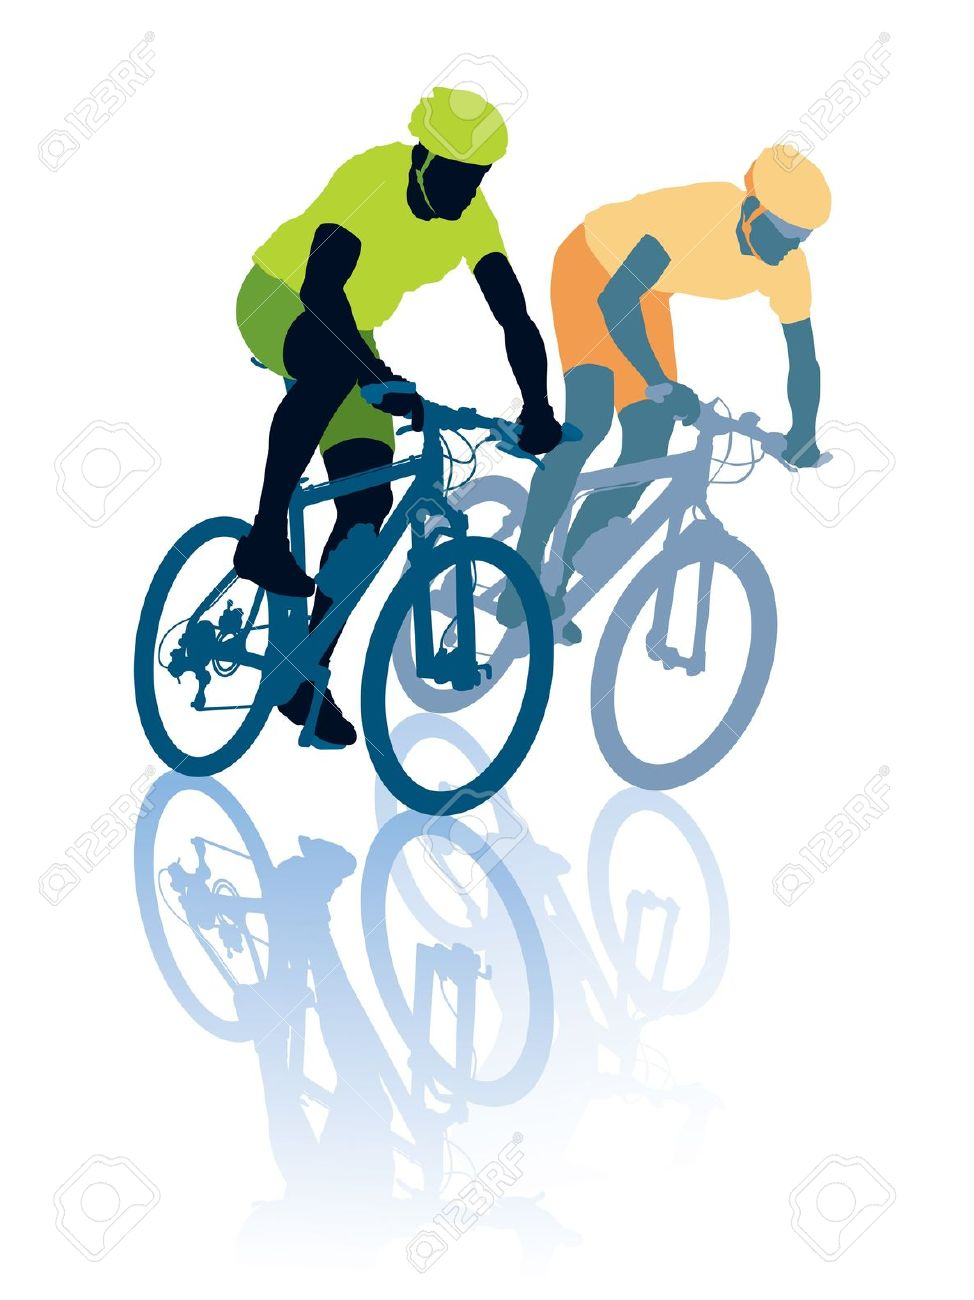 Two Cyclists In The Bicycle Race. Sport Illustration. Royalty Free.